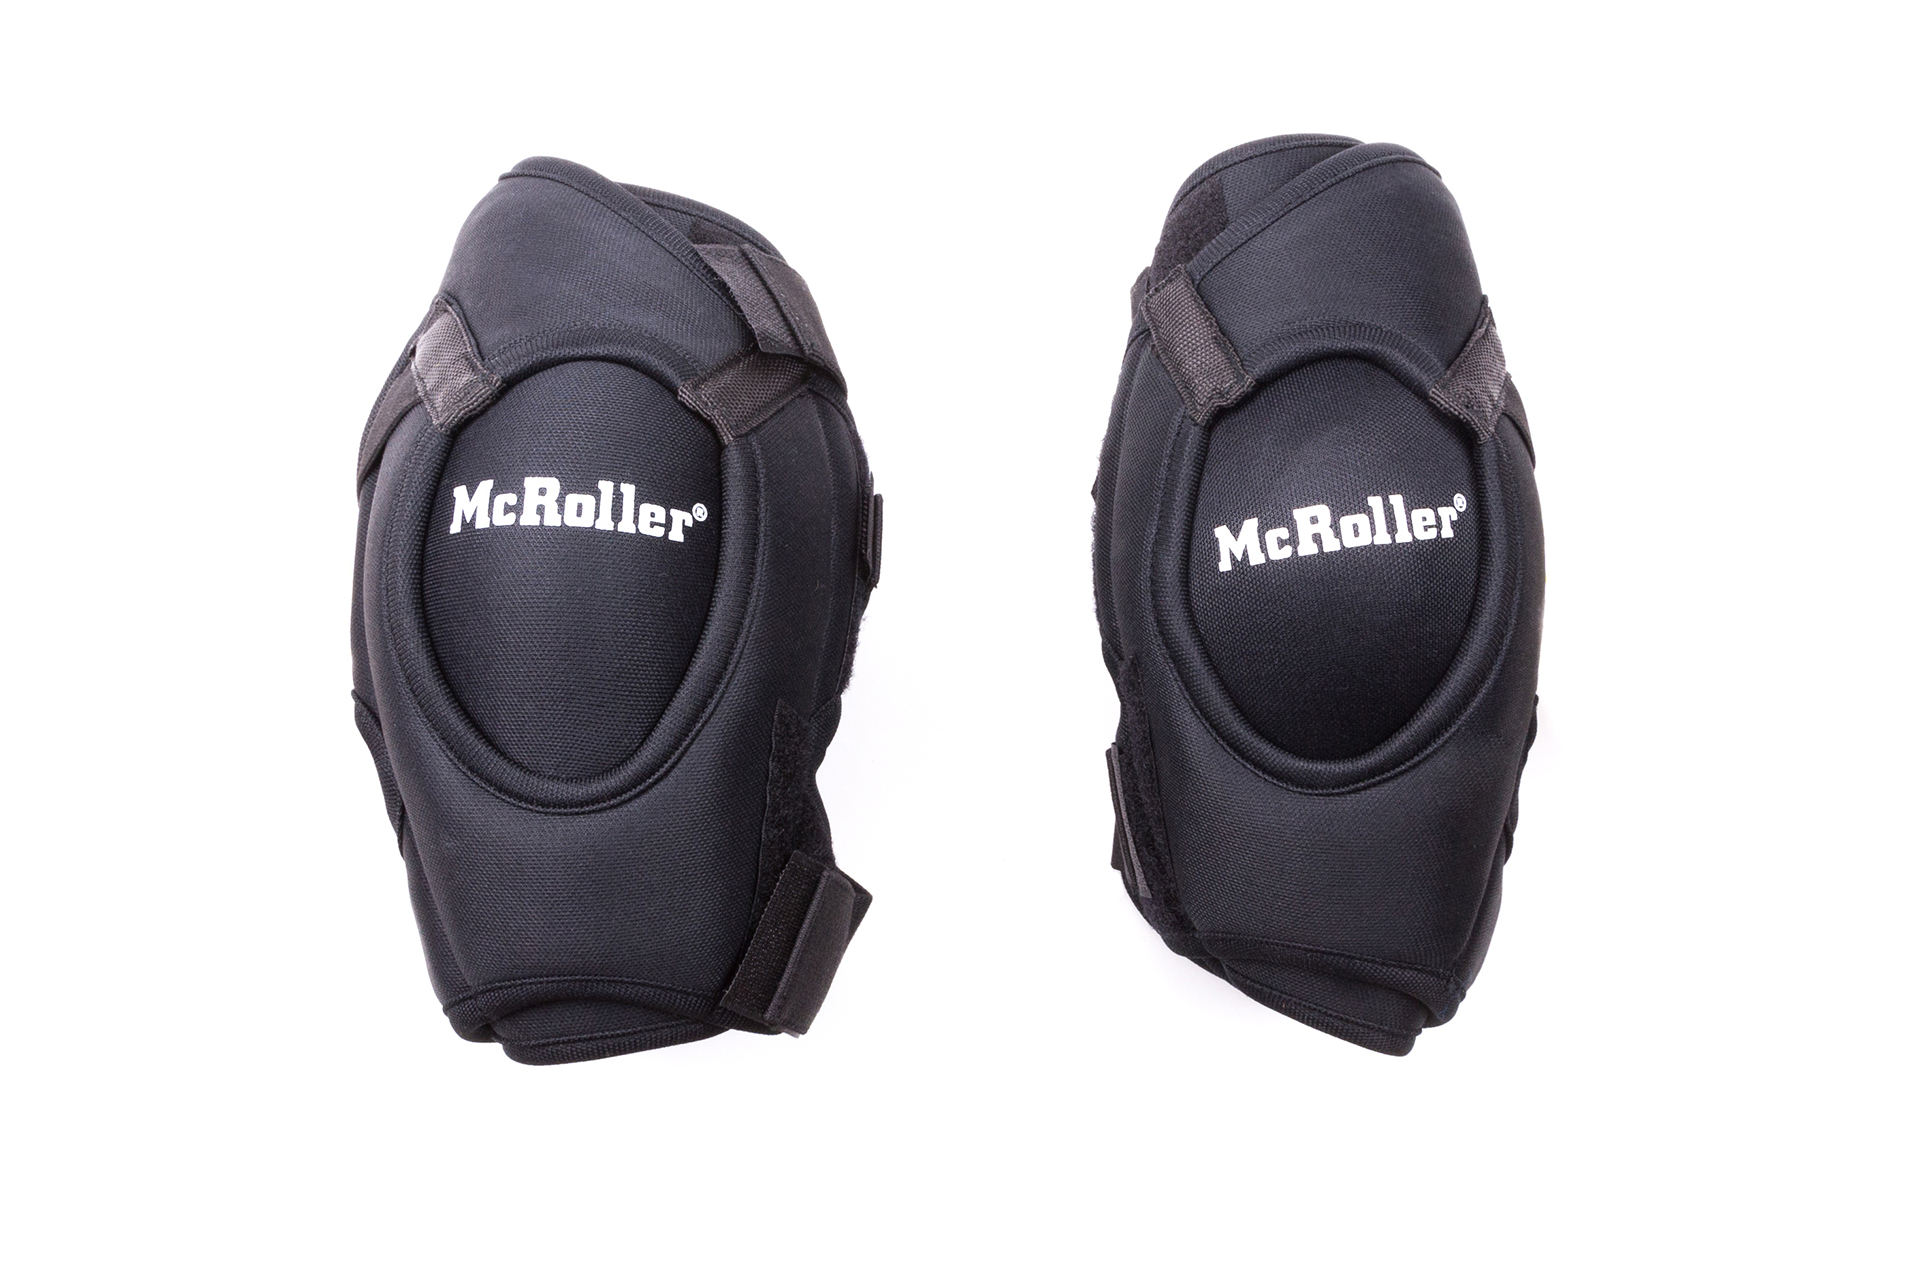 hockey protection elbow pads mcroller